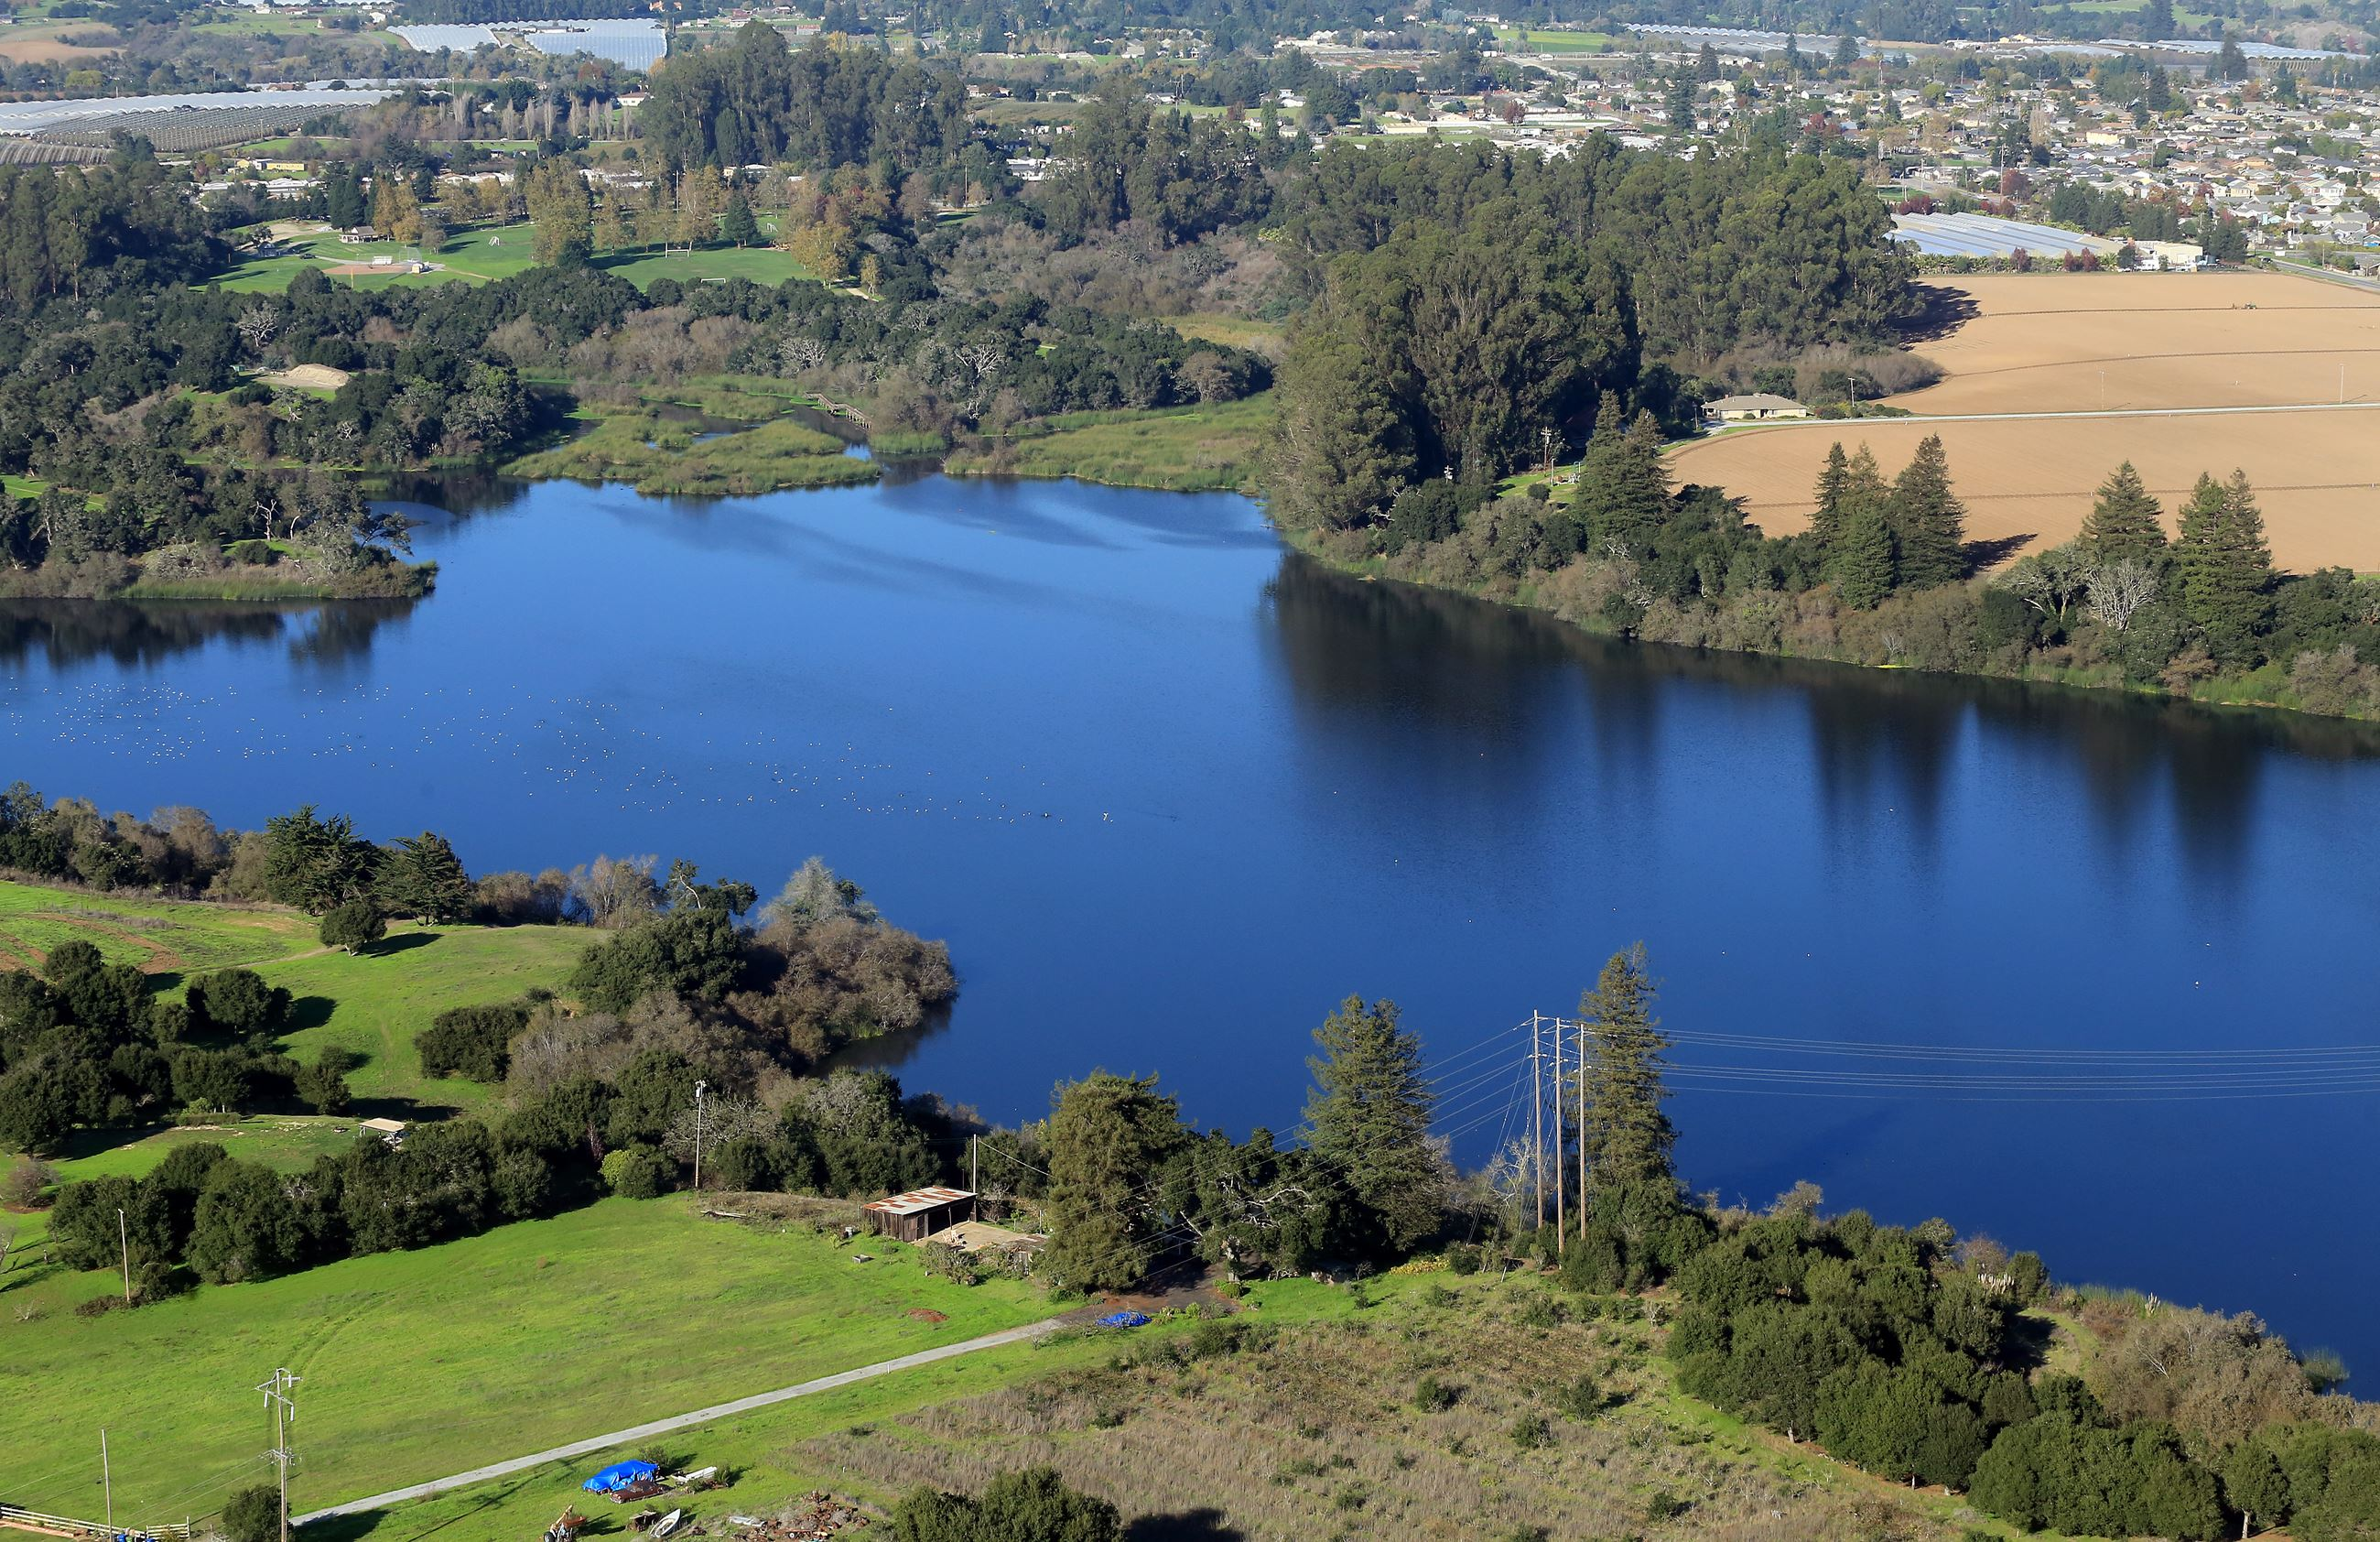 Aeria view of Pinto Lake